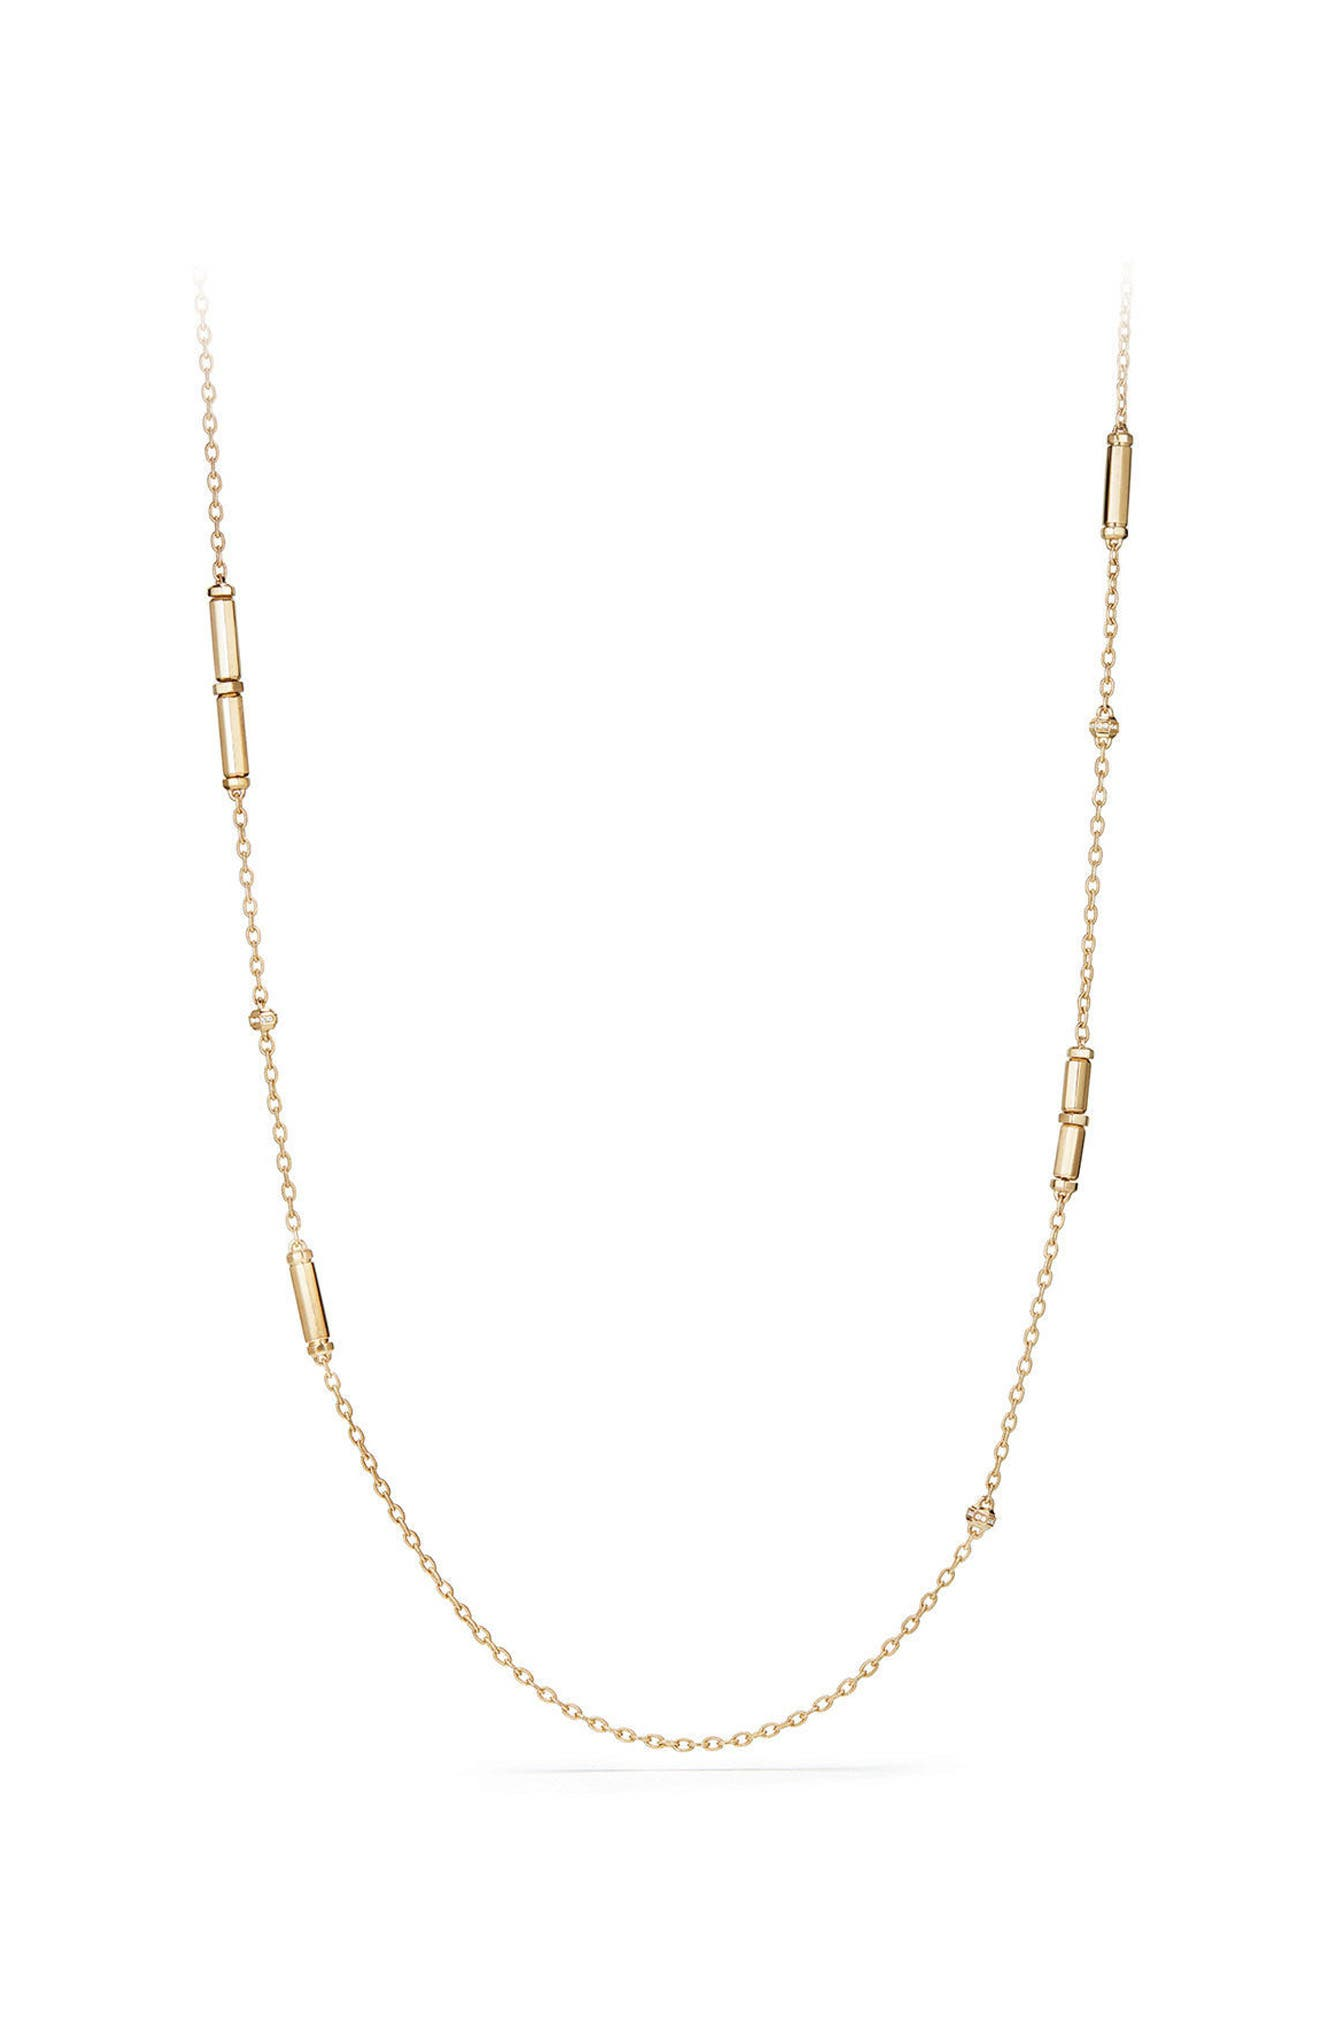 David Yurman Barrels Long Station Necklace with Diamonds